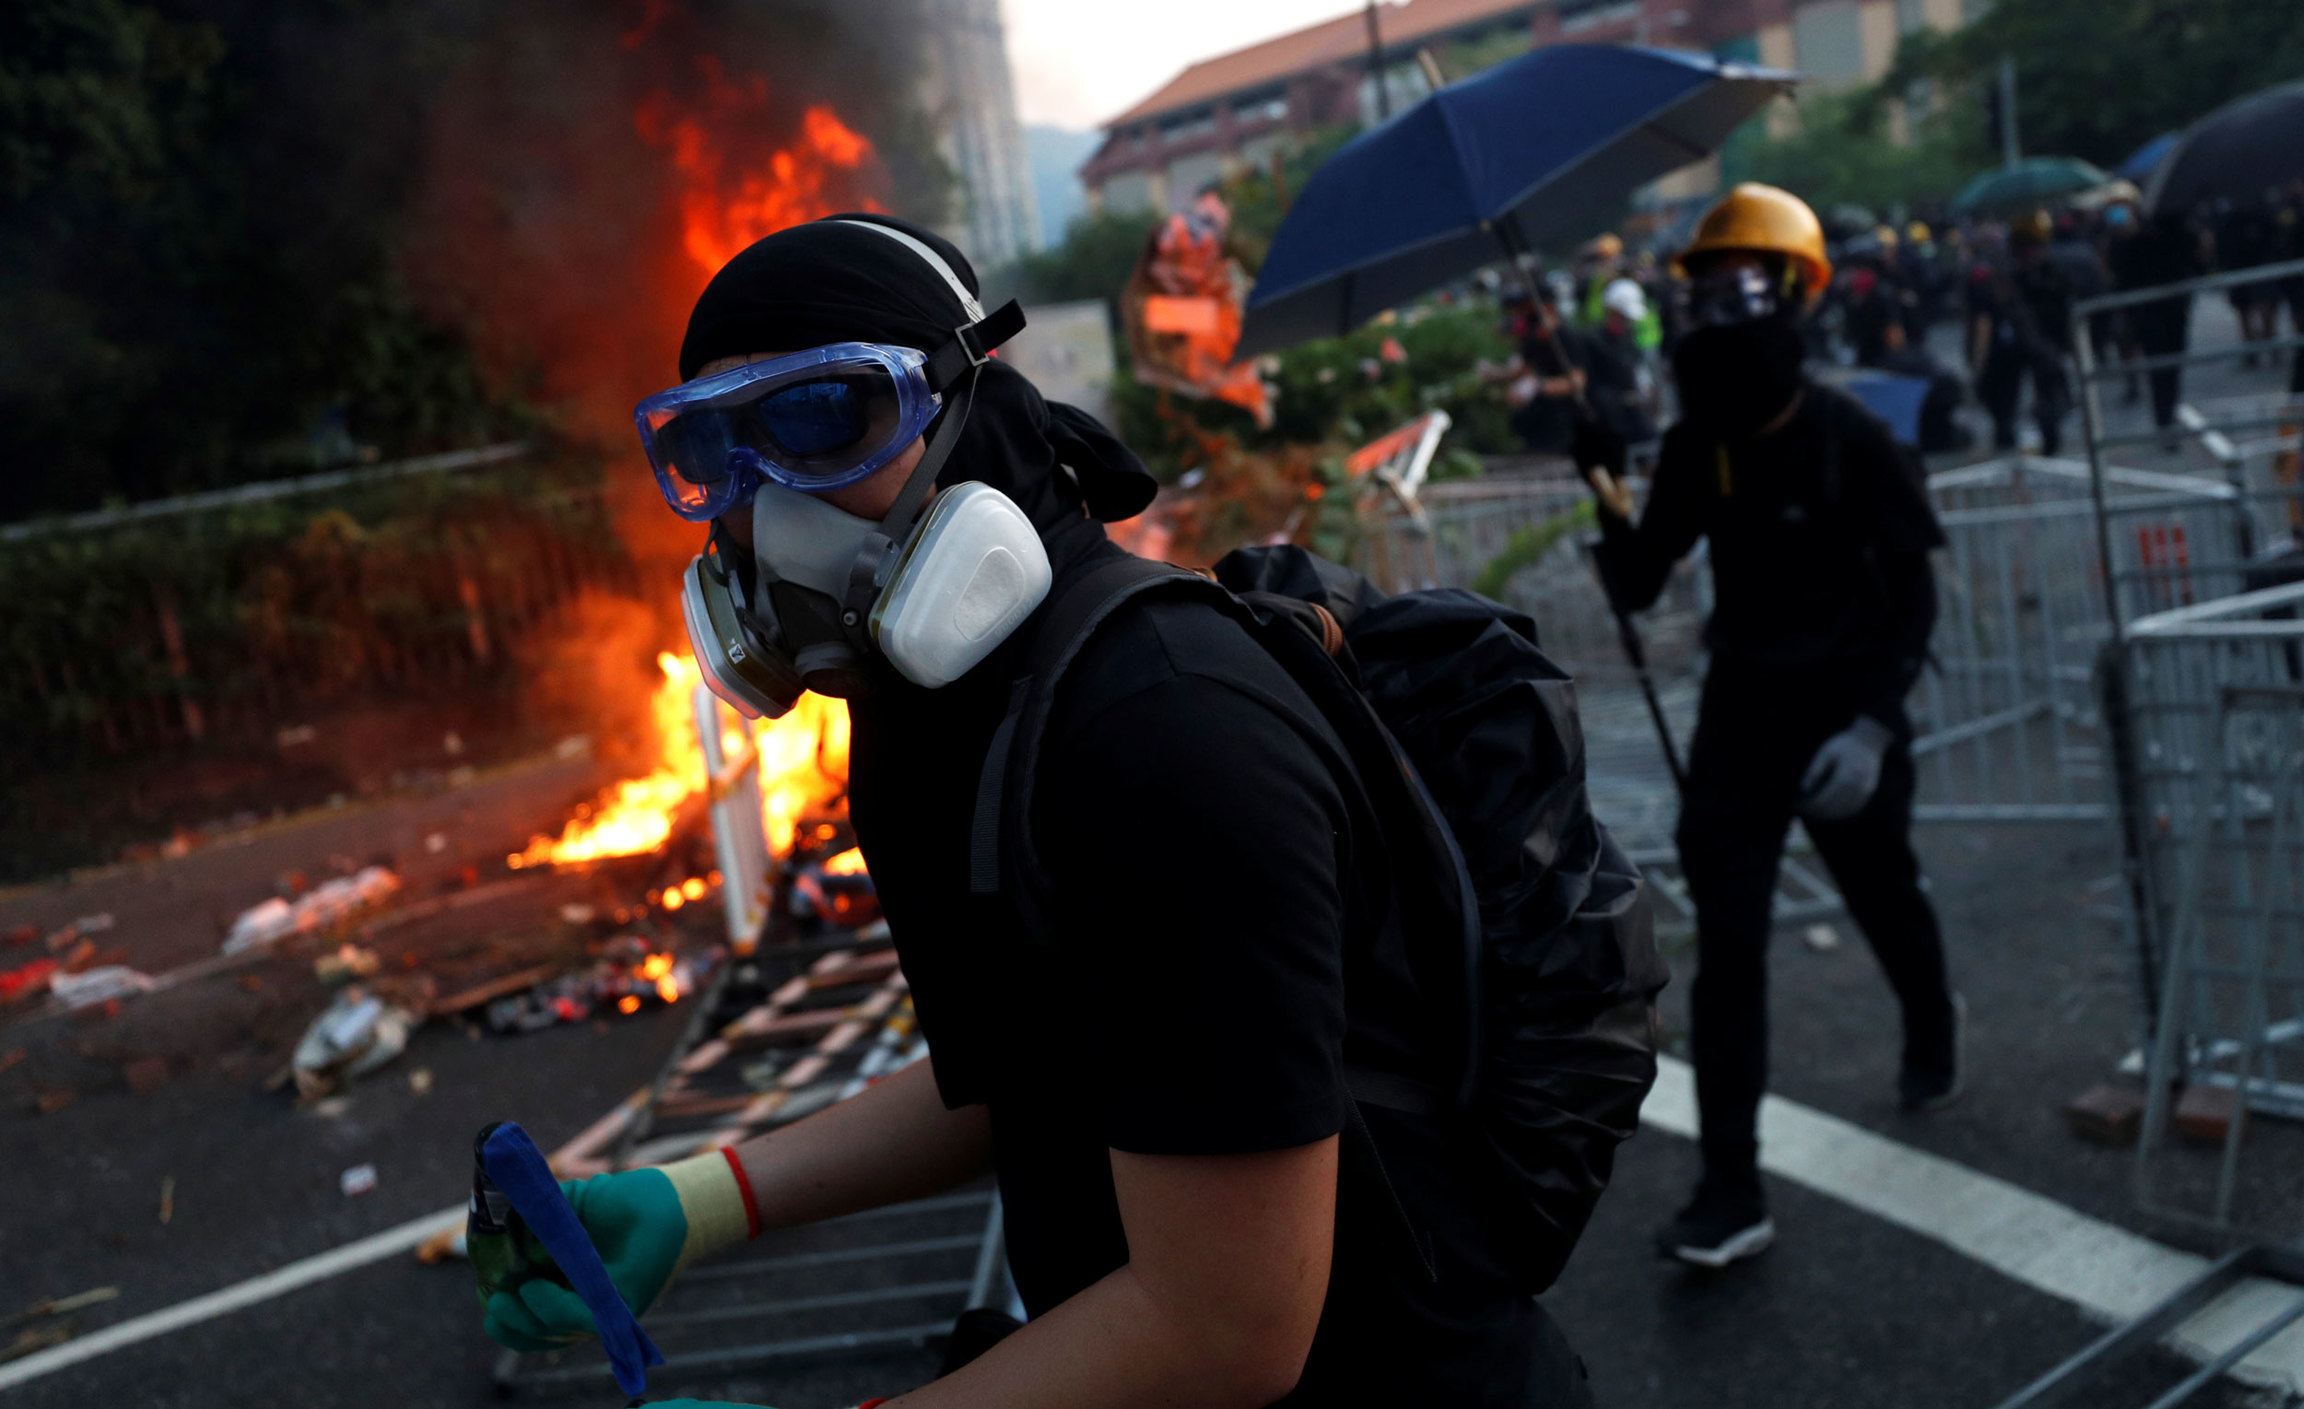 A protester is shown wearing goggles and a gas mask walking past a blazing fire.